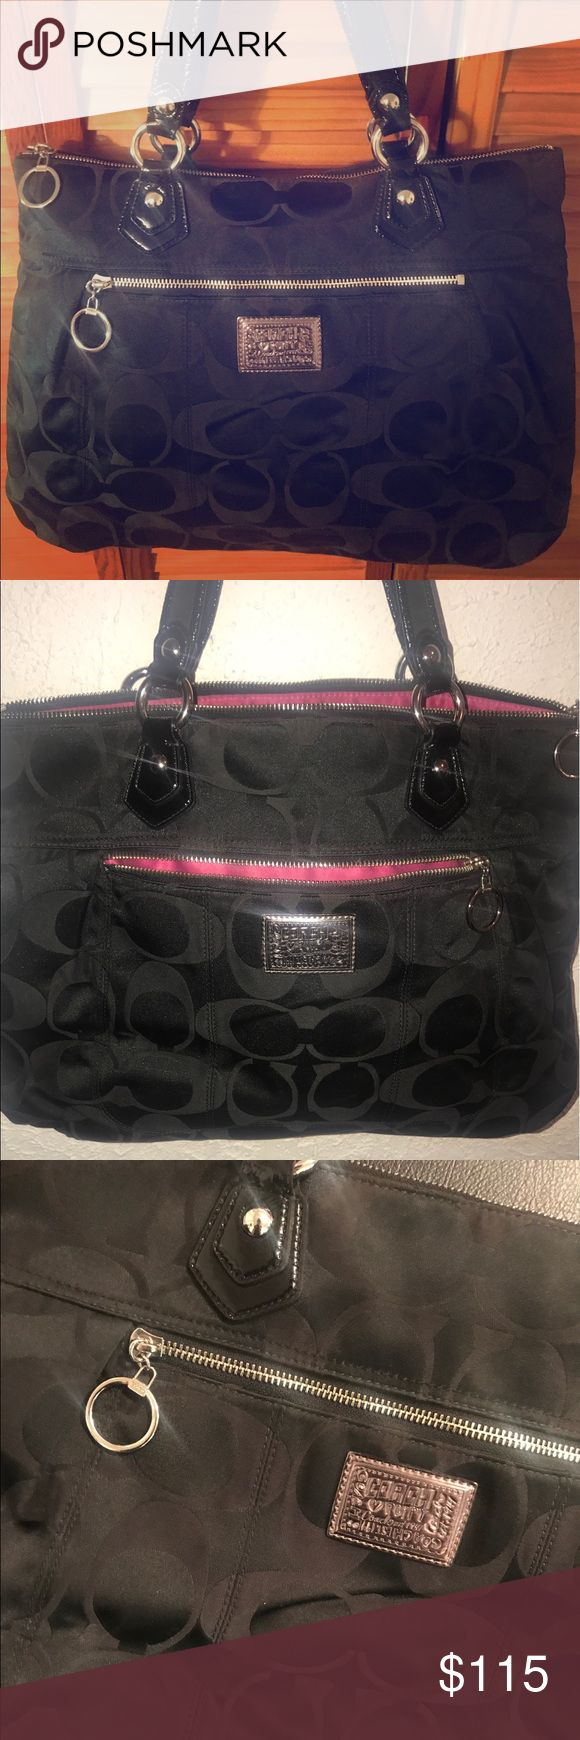 Coach Poppy Black Handbag Black Coach Poppy large handbag with pink interior. Coach Bags Totes